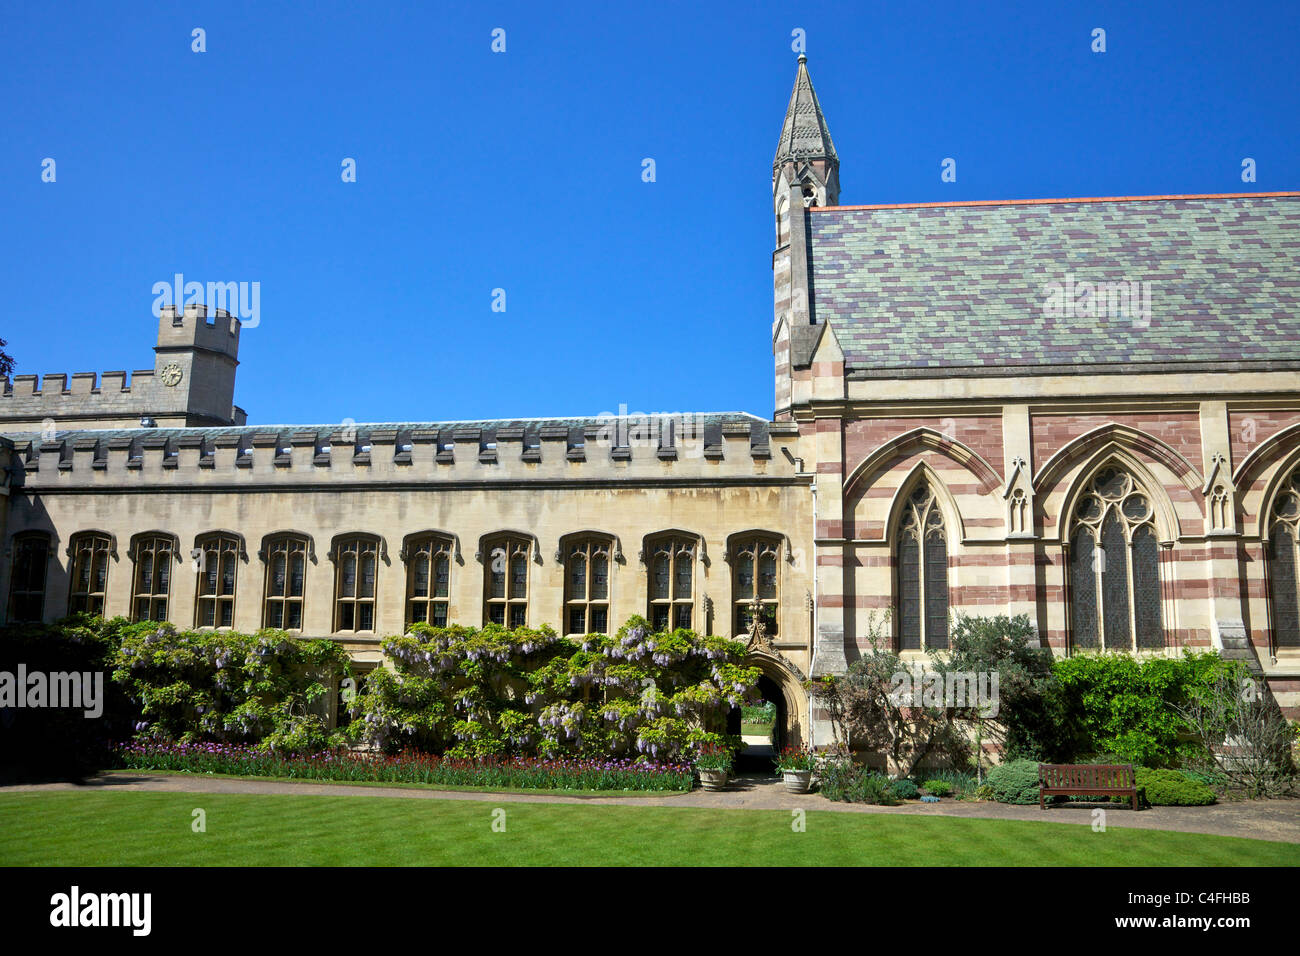 Balliol College, Oxford University, Oxfordshire, England, UK United Kingdom, GB, Great Britain, British Isles, Europe, - Stock Image